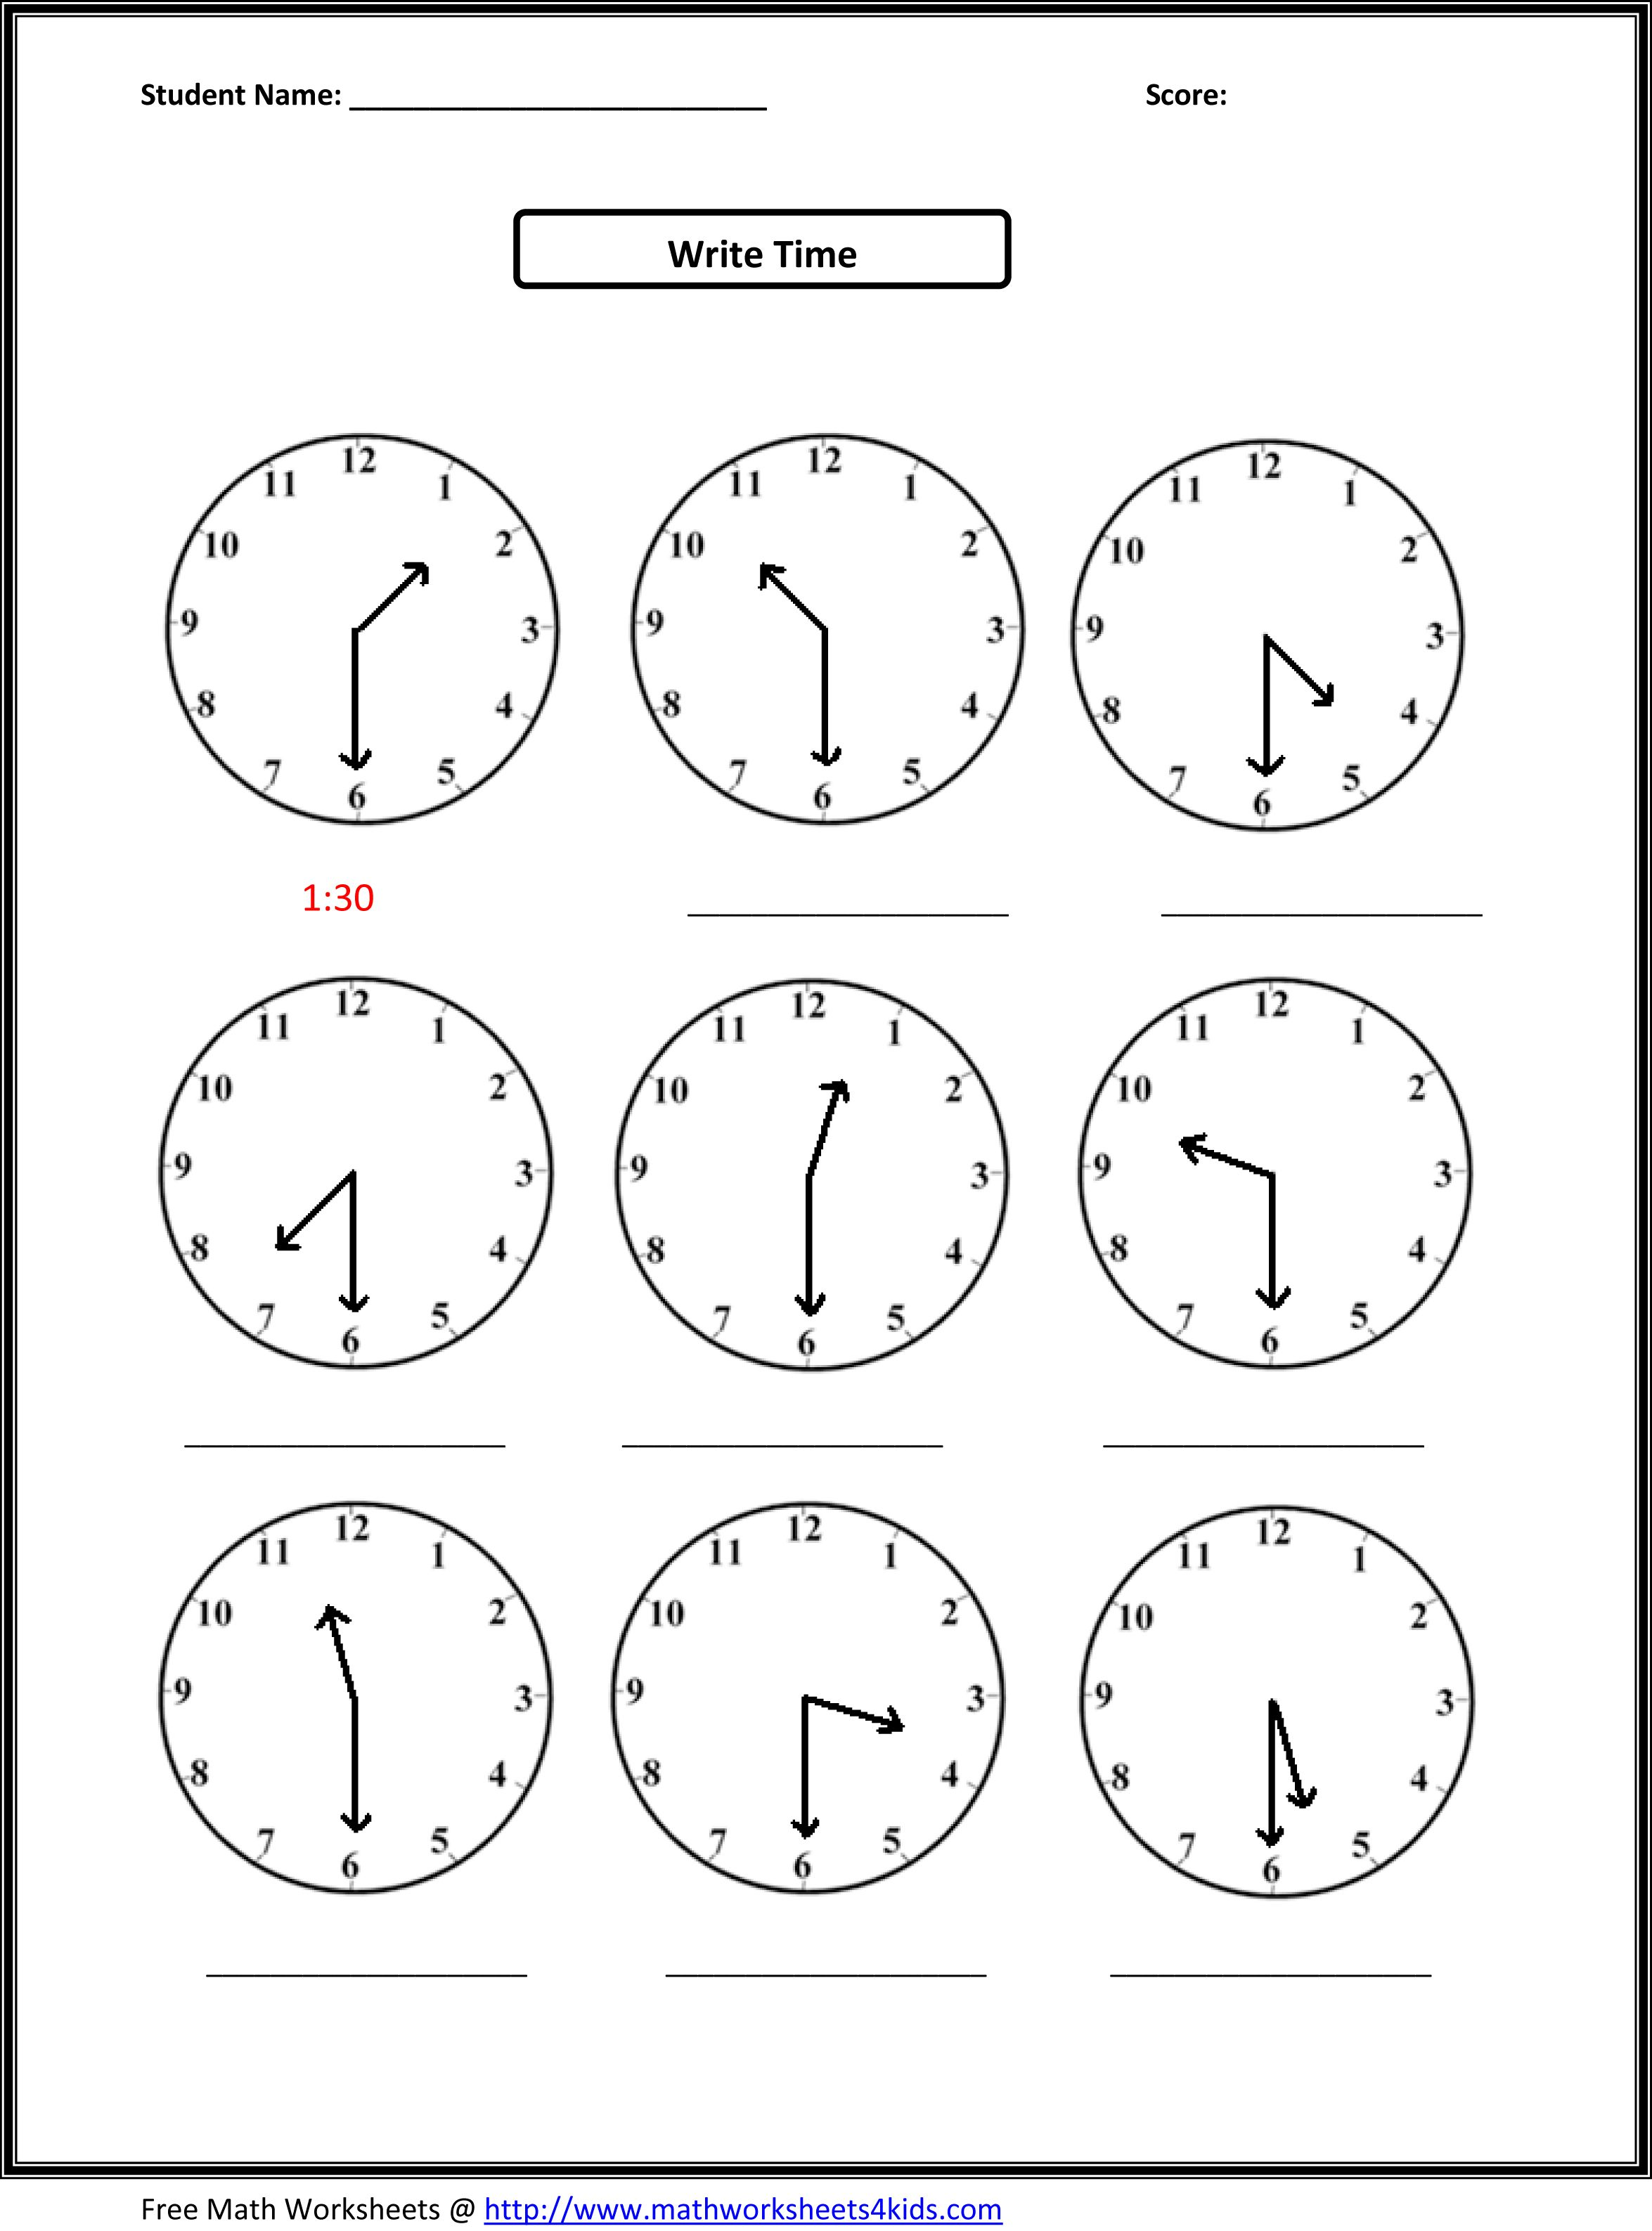 Weirdmailus  Terrific Worksheet On Time For Grade   Reocurent With Fascinating Free Printable Telling Time Worksheets Nd Grade  Reocurent With Beautiful Basic Algebra Word Problems Worksheet Also Metric Units Of Measurement Worksheets In Addition Label Parts Of A Microscope Worksheet And Worksheets On Shapes For Grade  As Well As Matter Science Worksheets Additionally Th Grade Force And Motion Worksheets From Reocurentcom With Weirdmailus  Fascinating Worksheet On Time For Grade   Reocurent With Beautiful Free Printable Telling Time Worksheets Nd Grade  Reocurent And Terrific Basic Algebra Word Problems Worksheet Also Metric Units Of Measurement Worksheets In Addition Label Parts Of A Microscope Worksheet From Reocurentcom